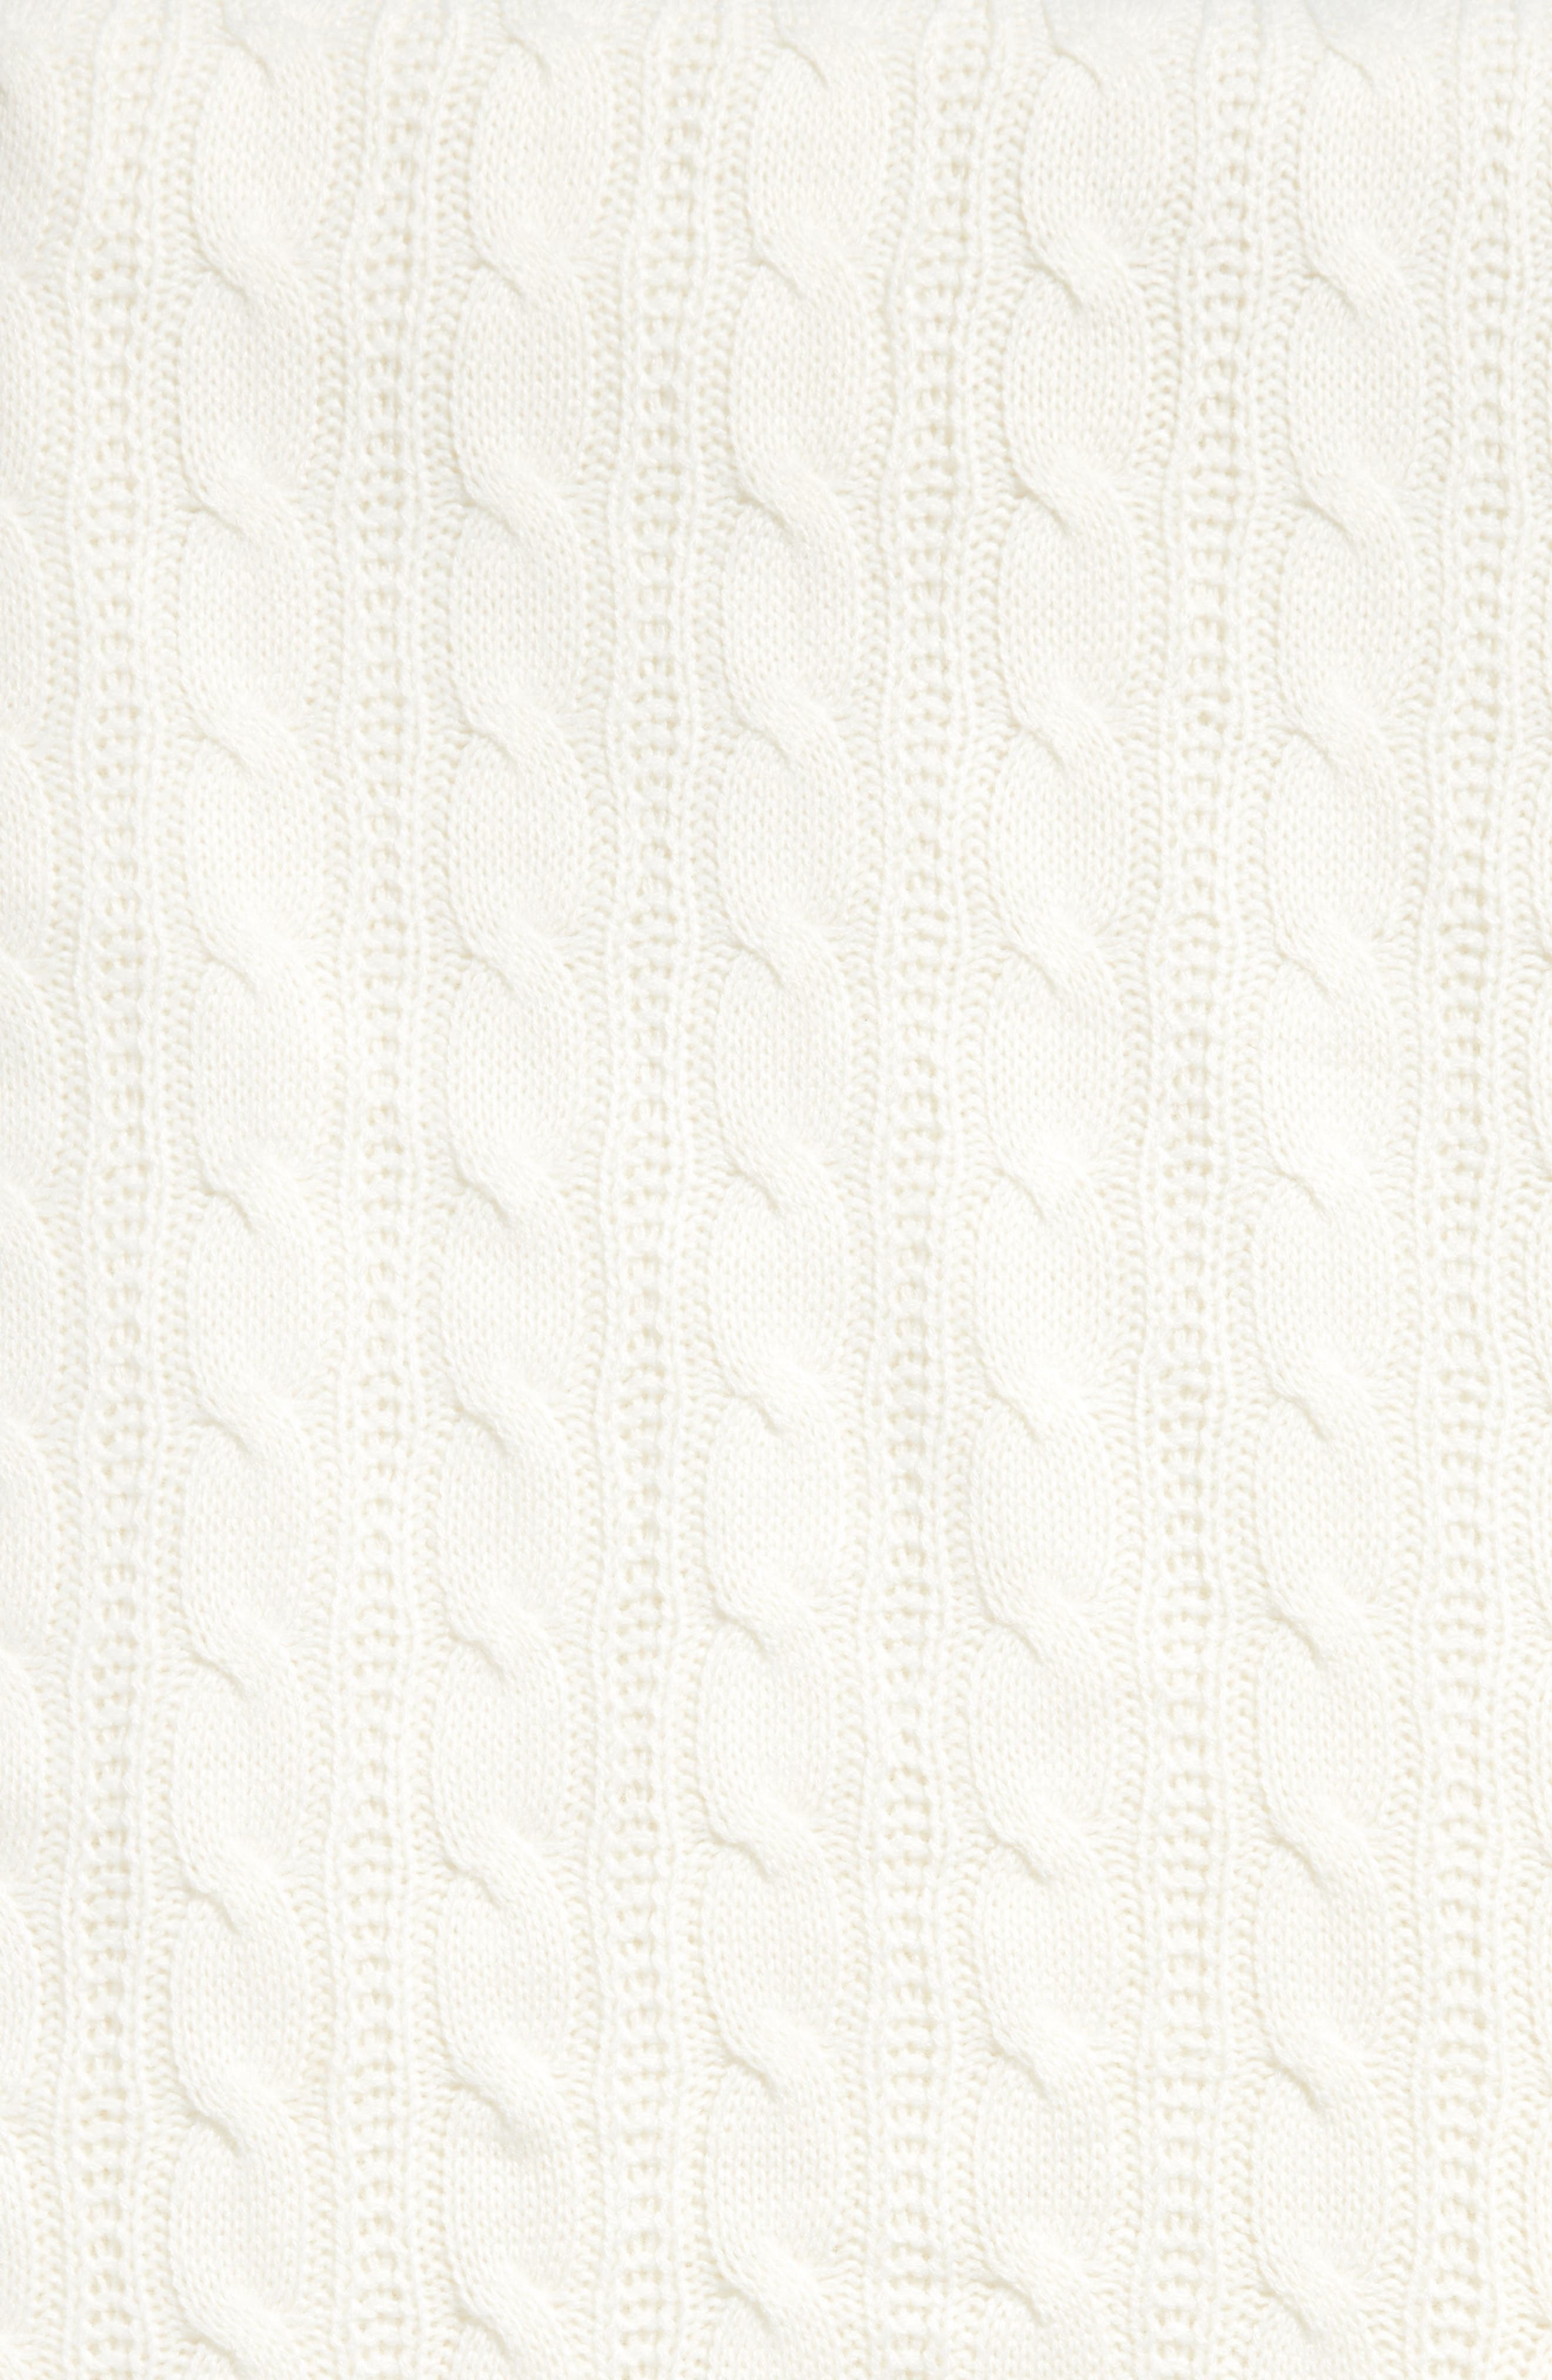 Cable Knit Throw Blanket,                             Alternate thumbnail 2, color,                             Ivory